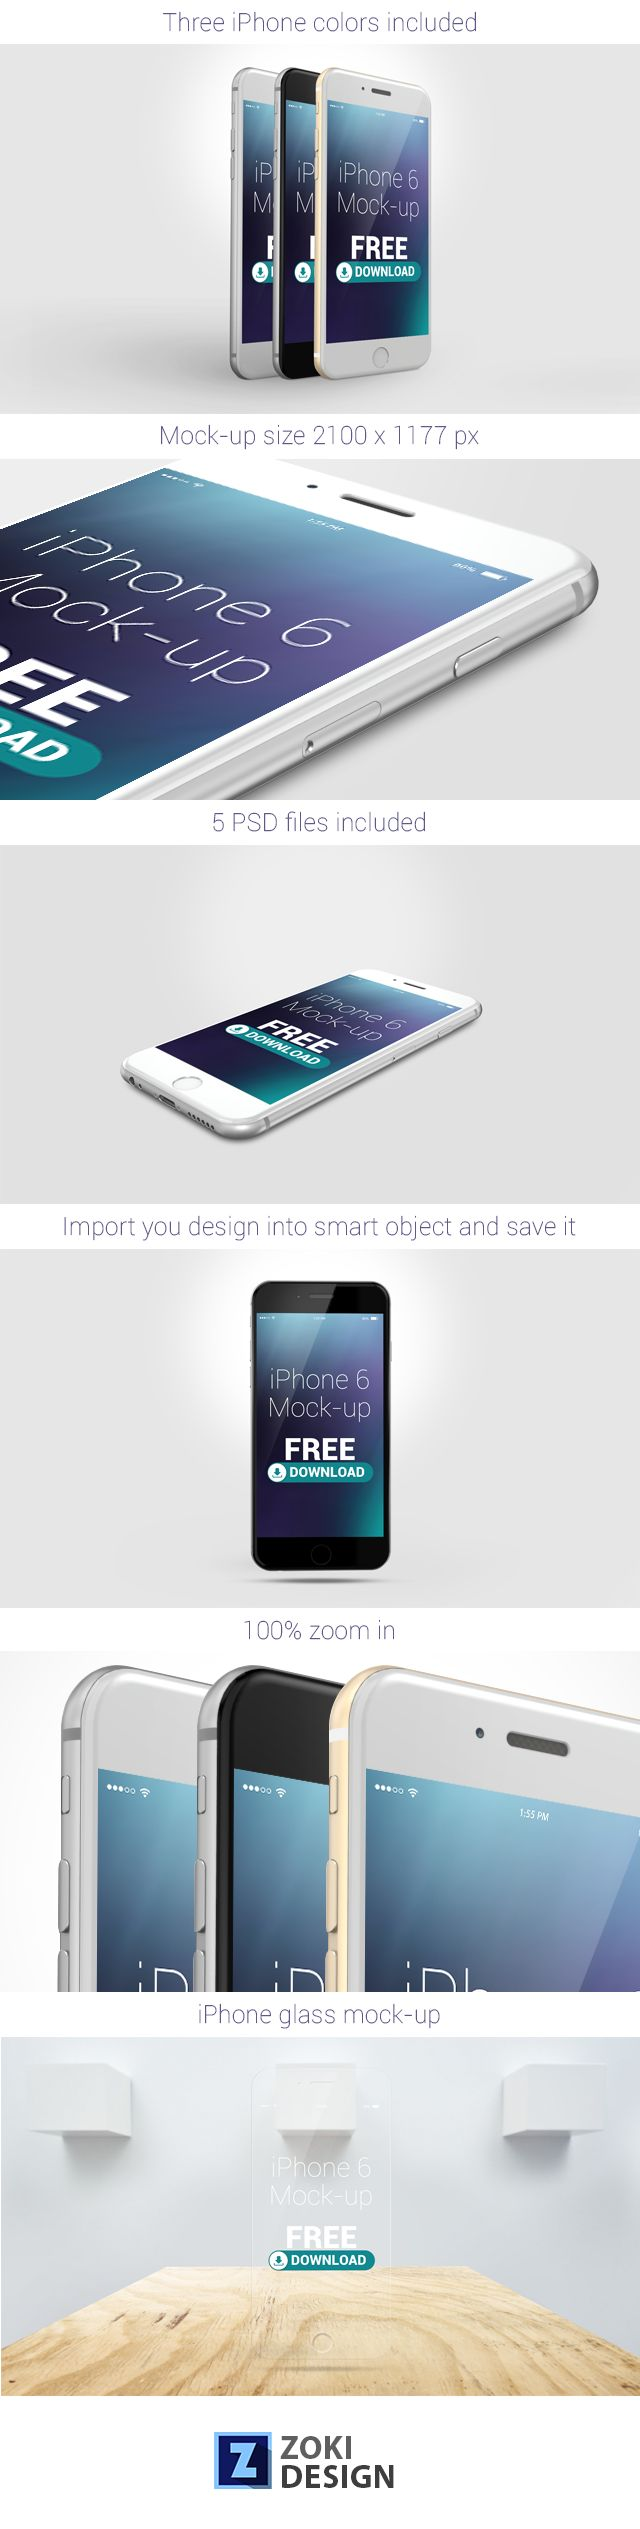 442 best images about free mockup on pinterest